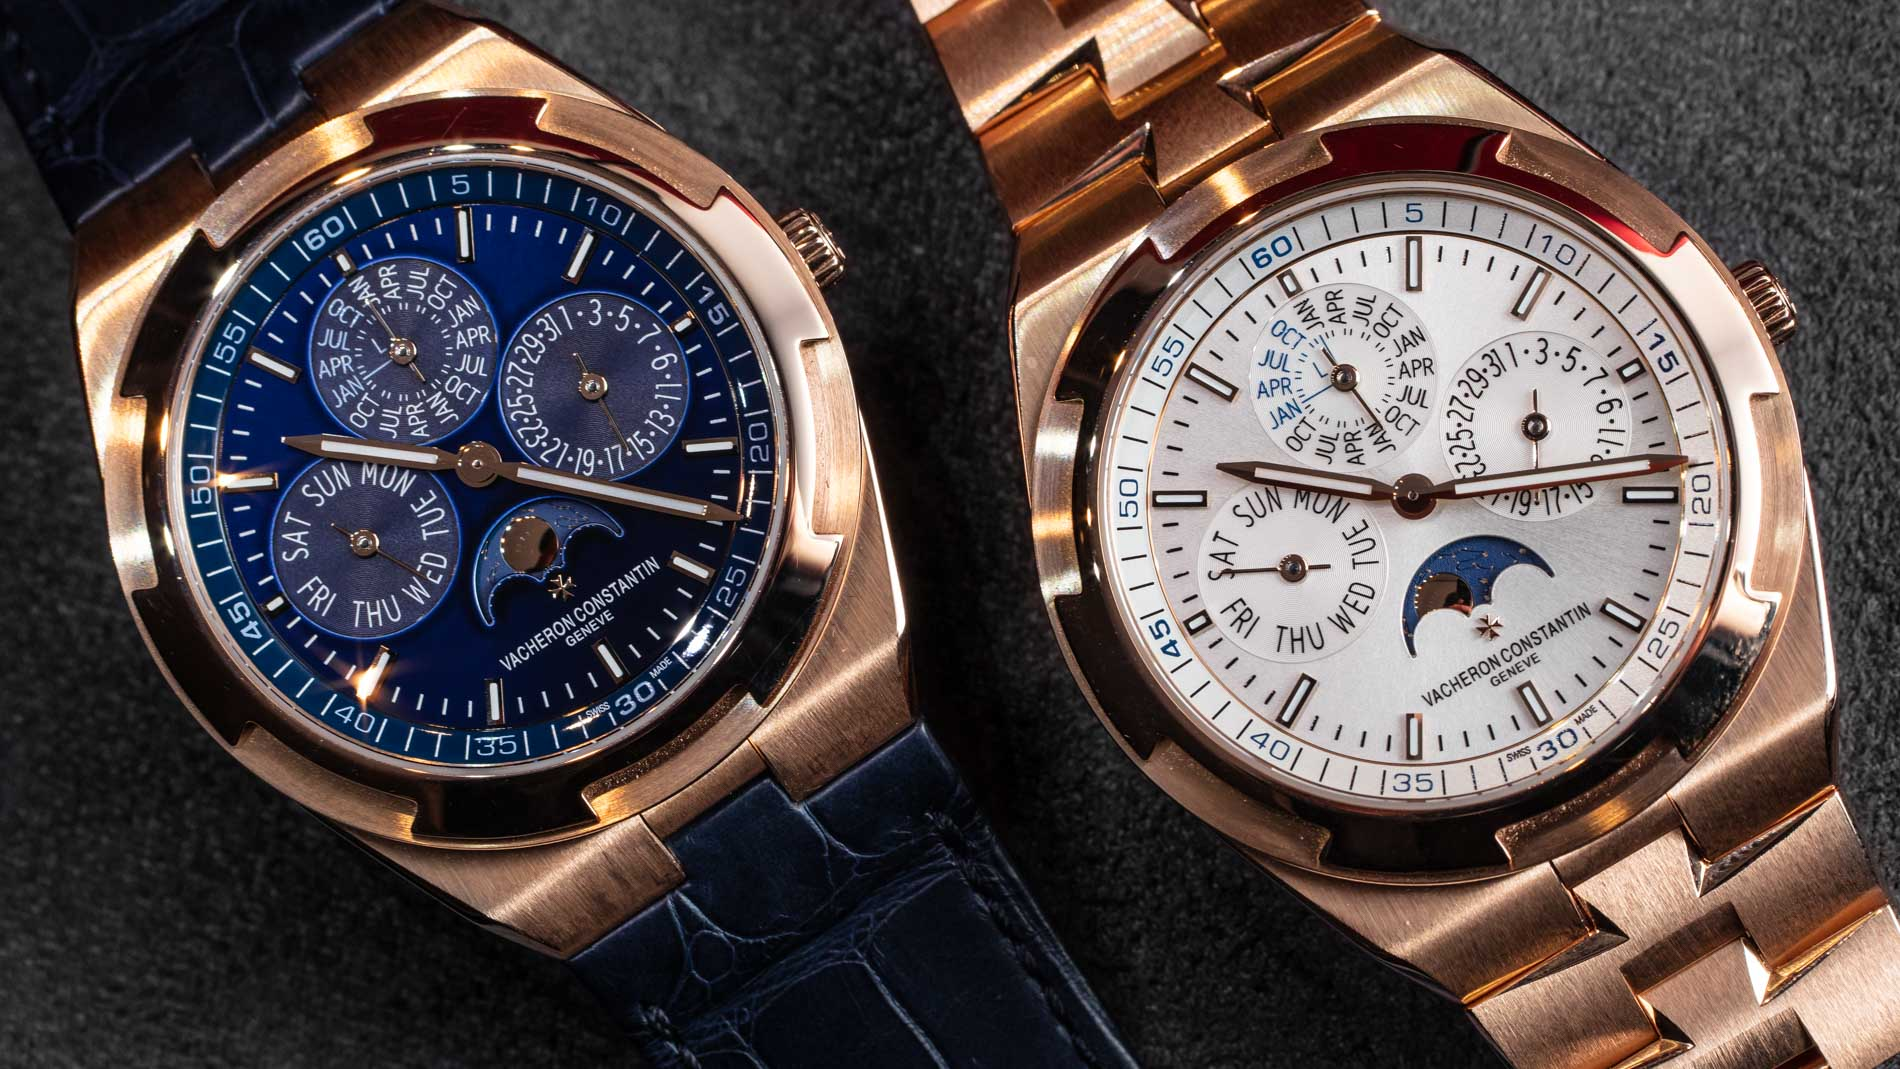 The Top 5 Luxury Timepieces Of 2020 (So Far!) luxury timepiece The Top 5 Luxury Timepieces Of 2020 (So Far!) The Top 5 Luxury Timepieces Of 2020 So Far 9